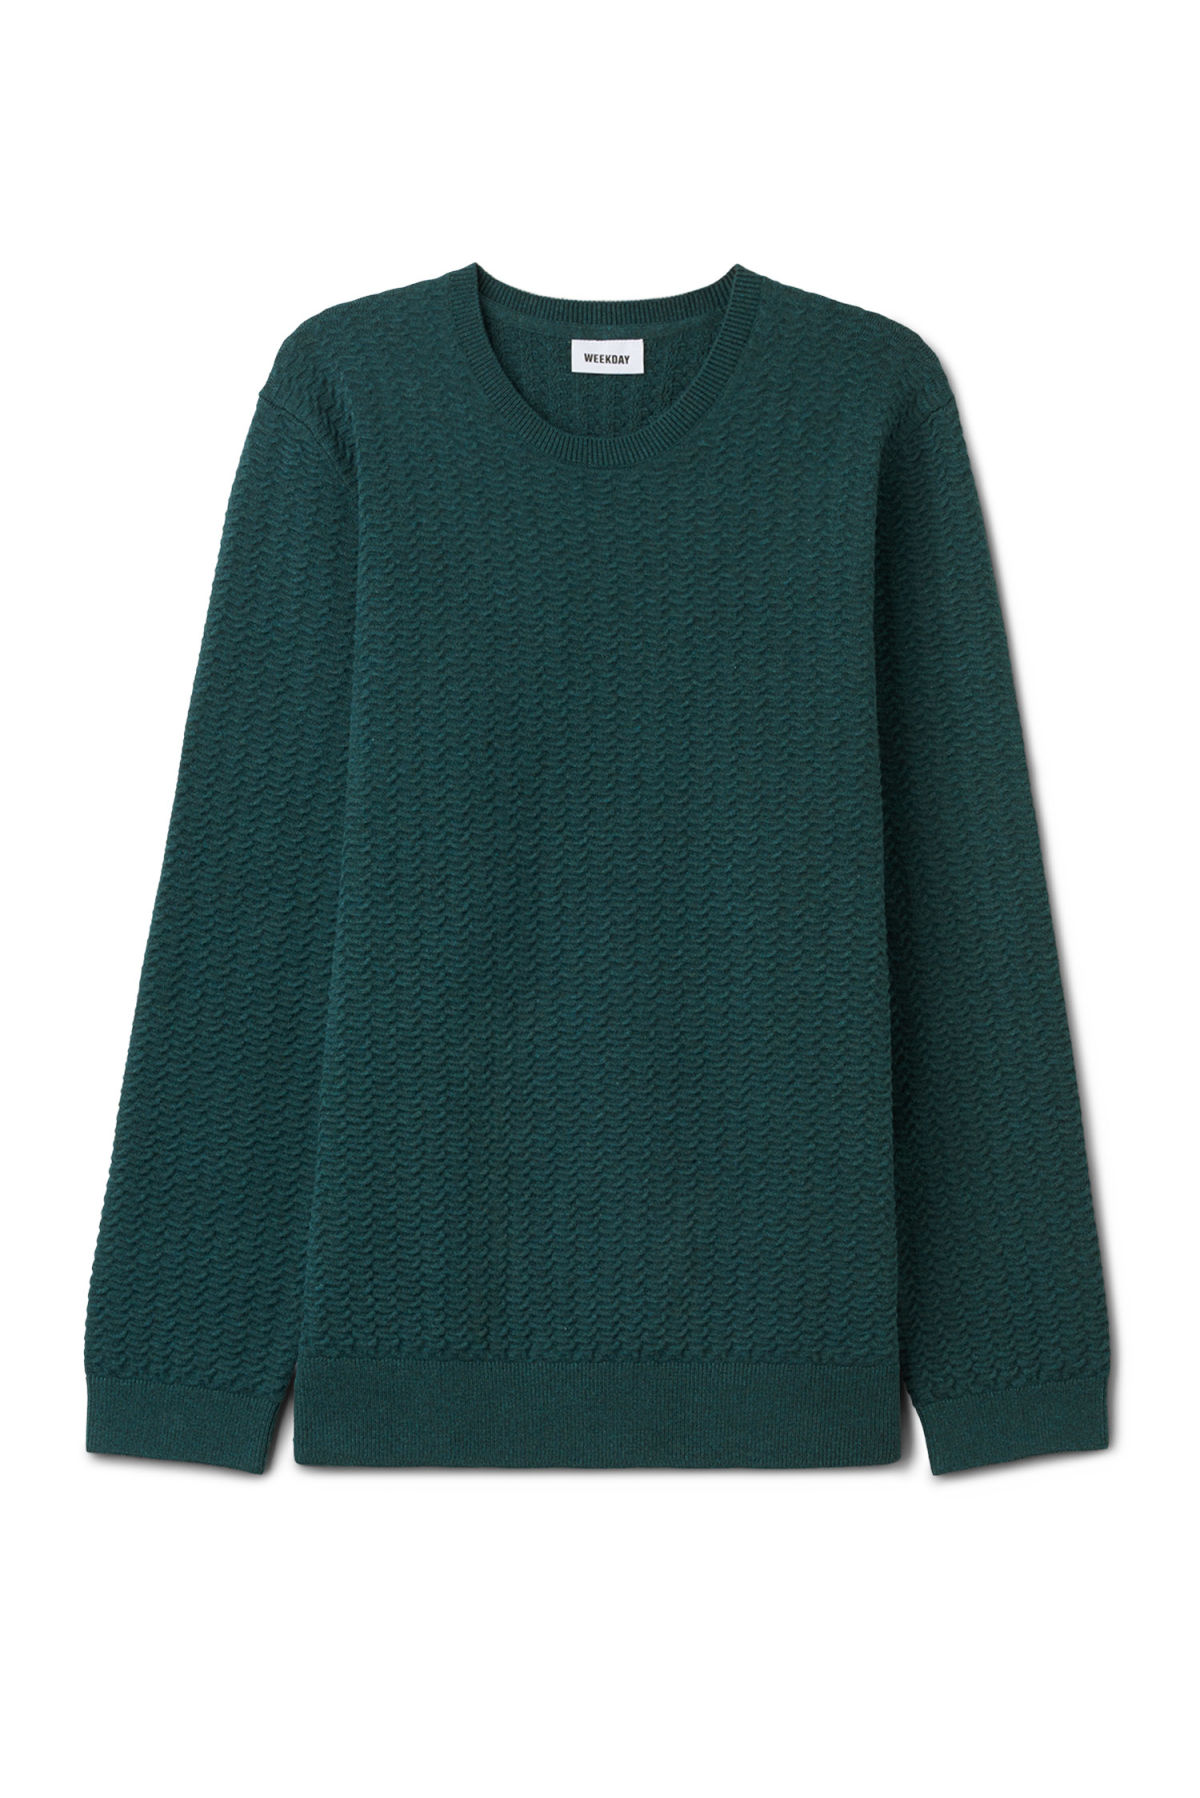 Front image of Weekday john knit sweater in turquoise